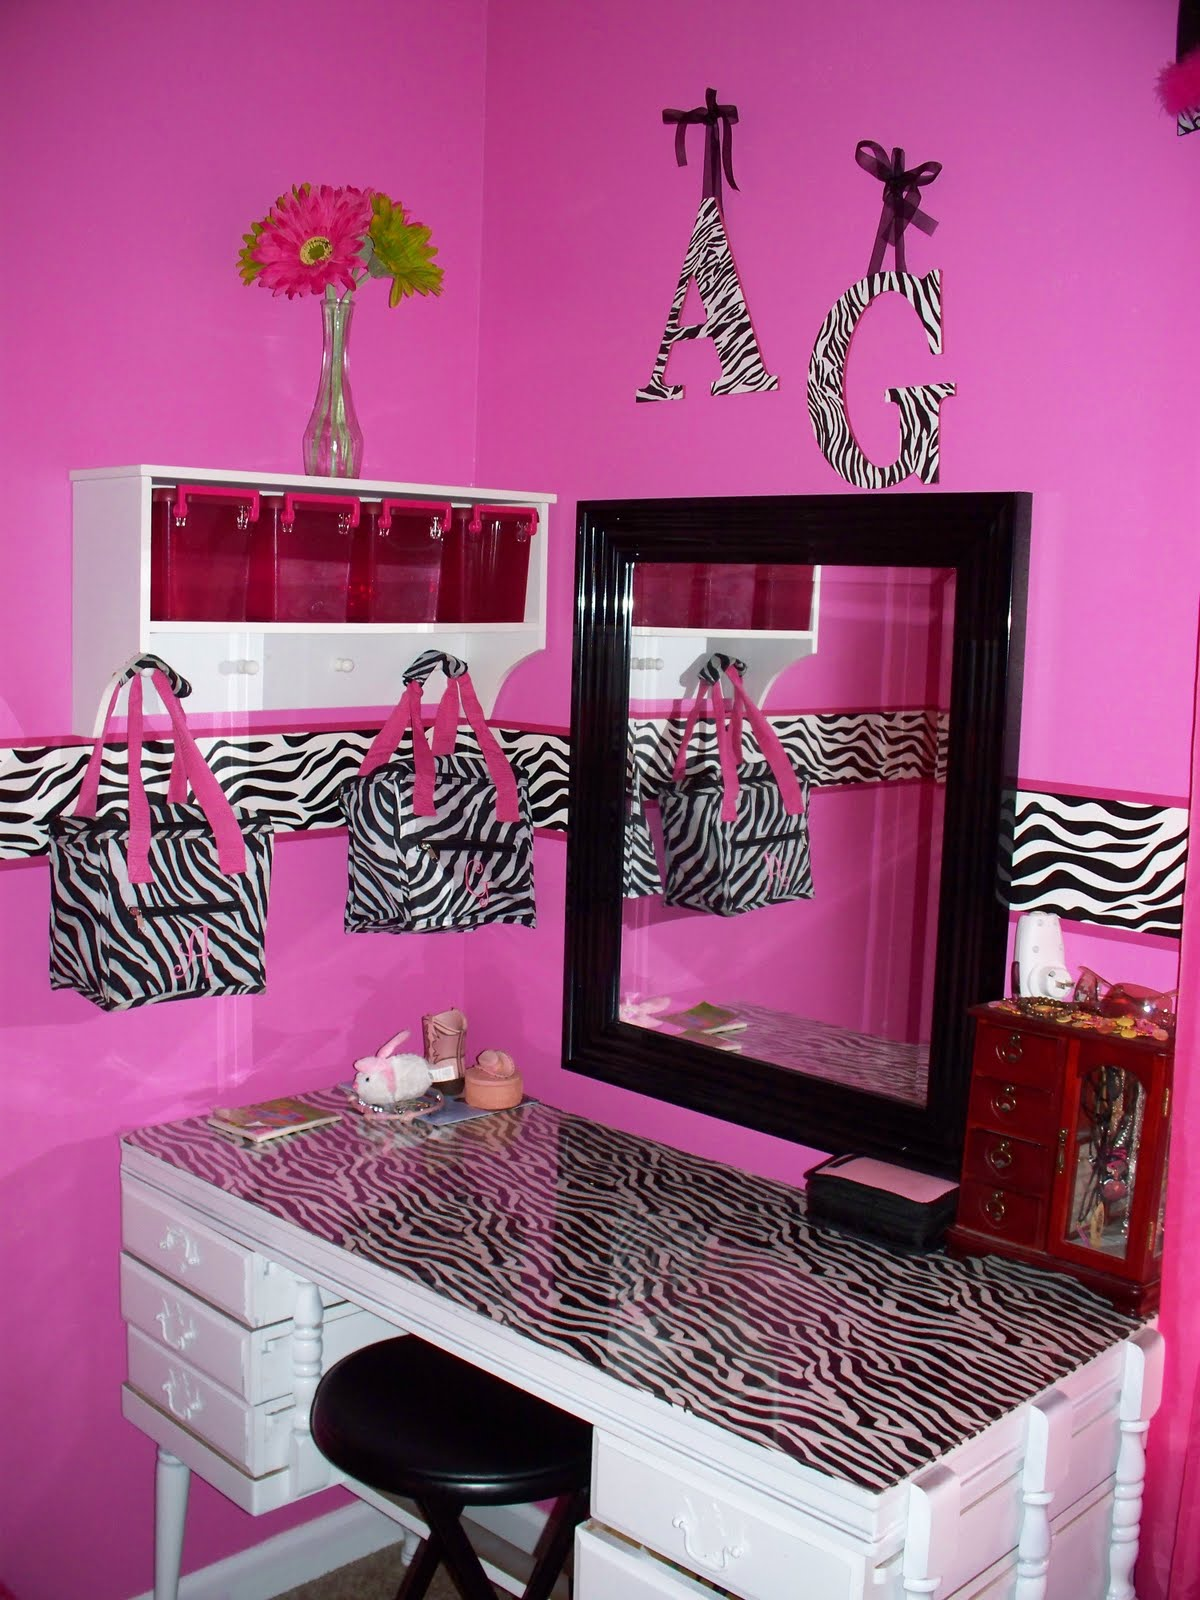 Mommy lou who hot pink zebra room for Zebra print bedroom ideas